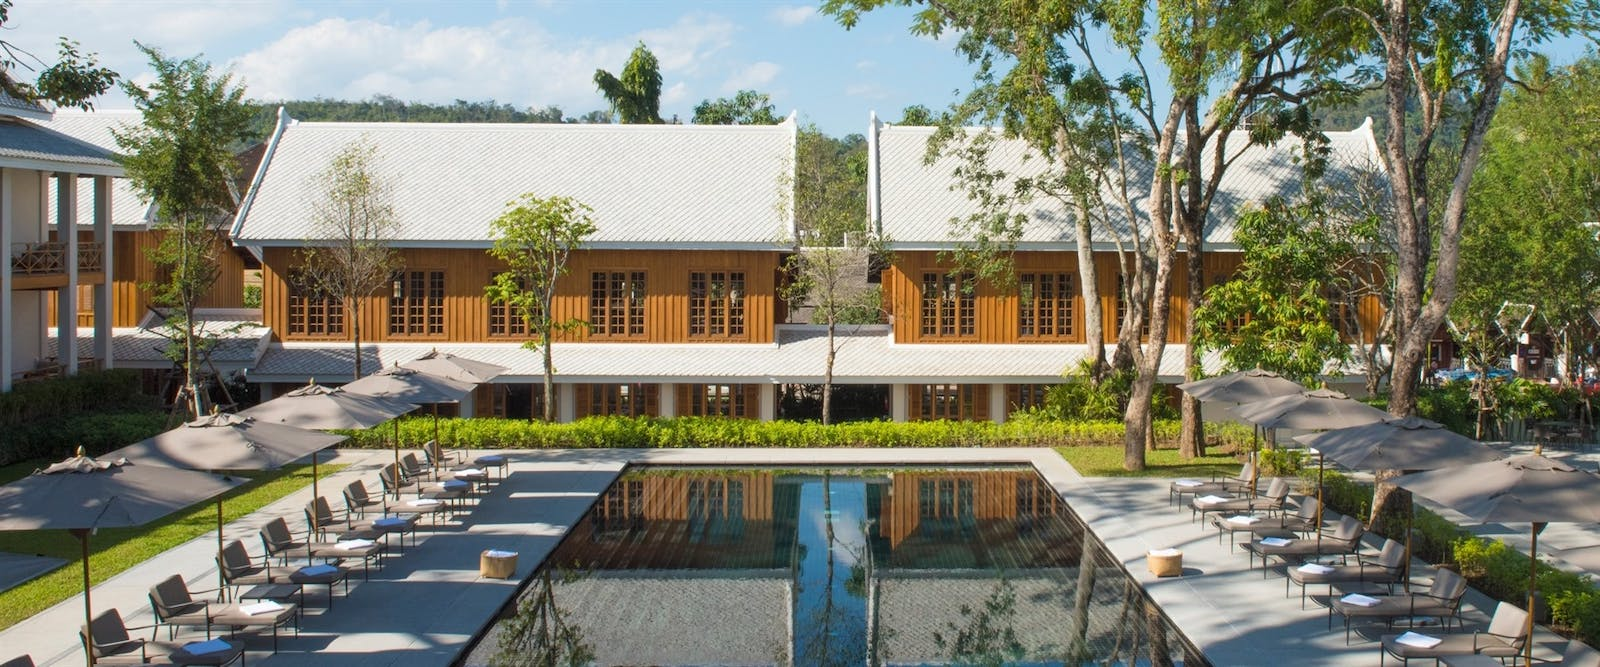 Avani luang prabang luxury laos hotel - Settha palace hotel swimming pool ...